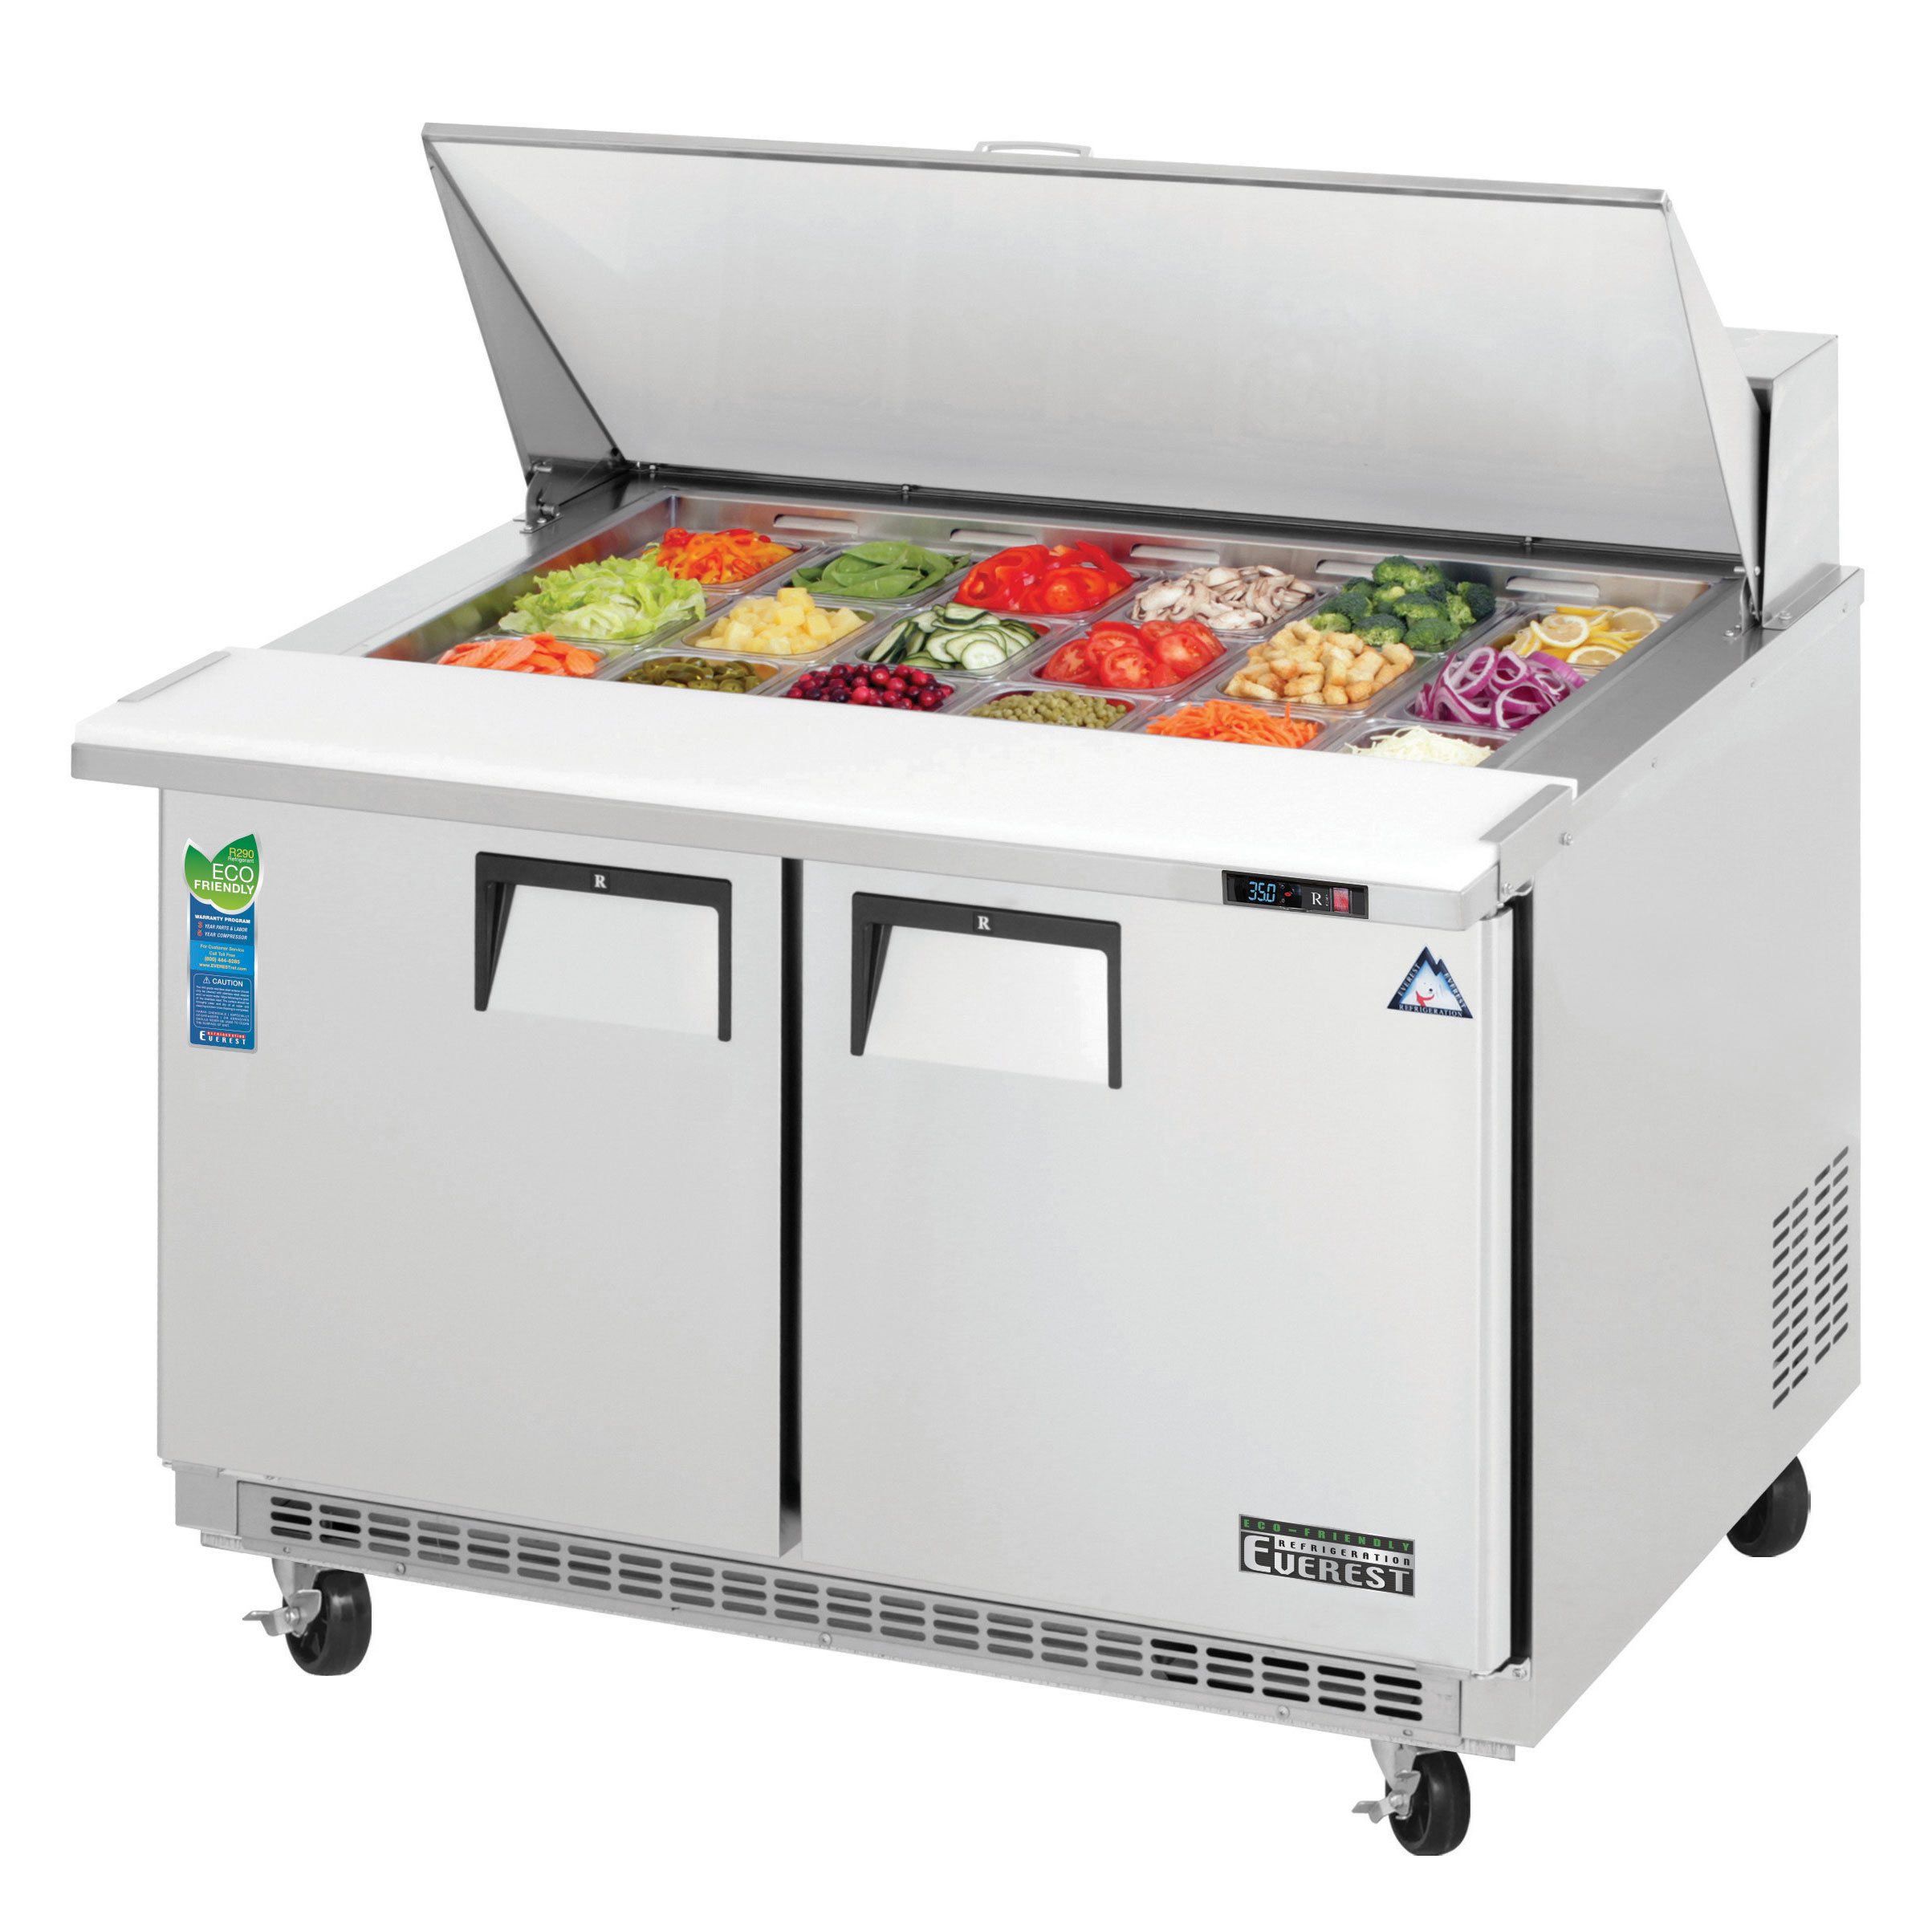 Everest Refrigeration EPBR2 refrigerated counter, mega top sandwich / salad unit